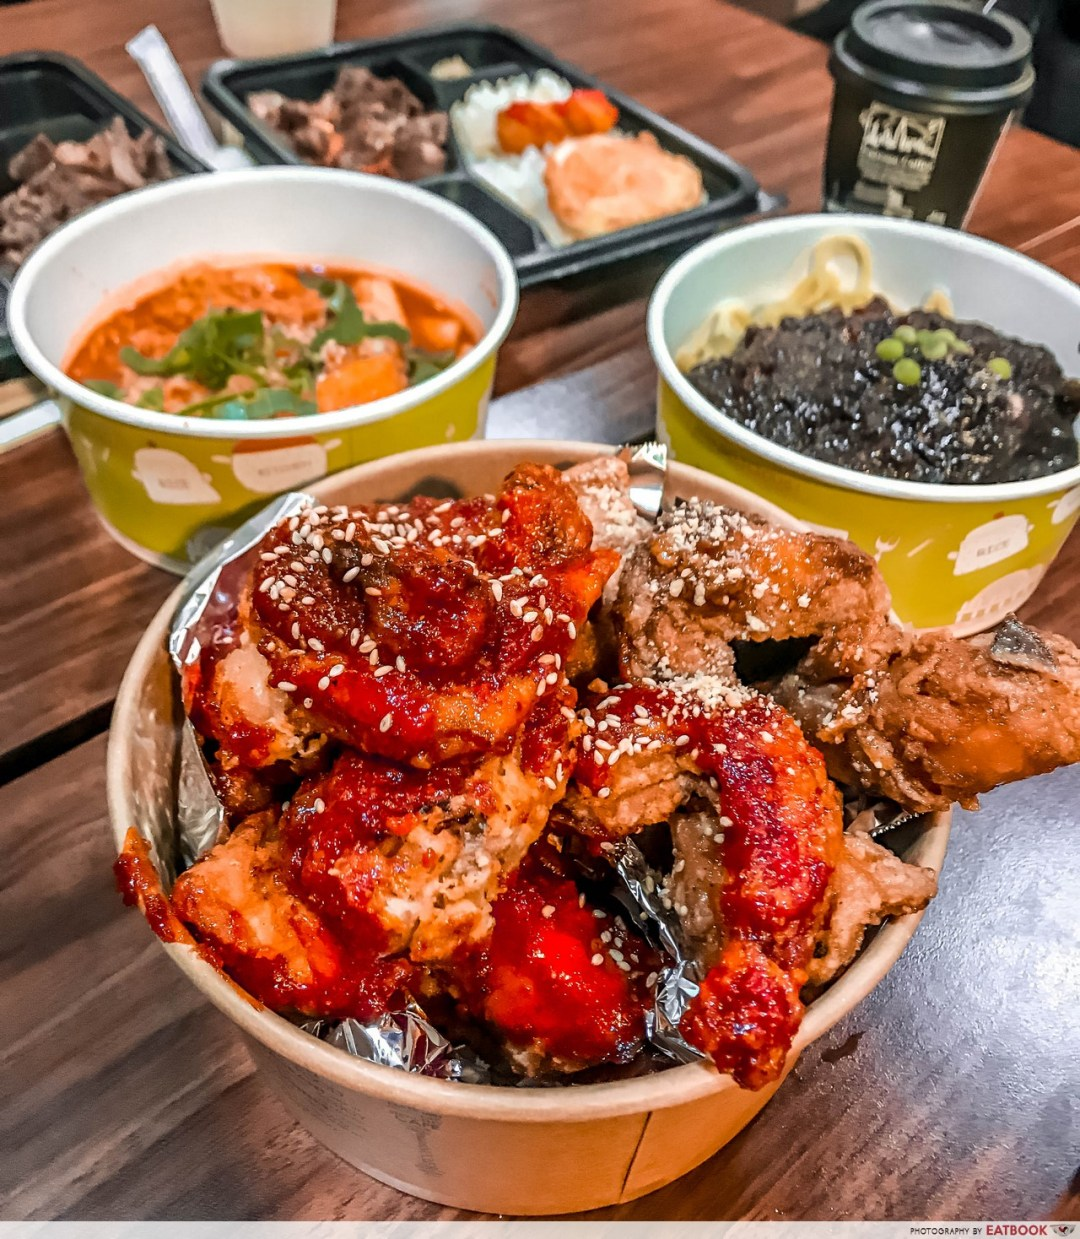 Halal Food places In Seoul - BoA Travel House